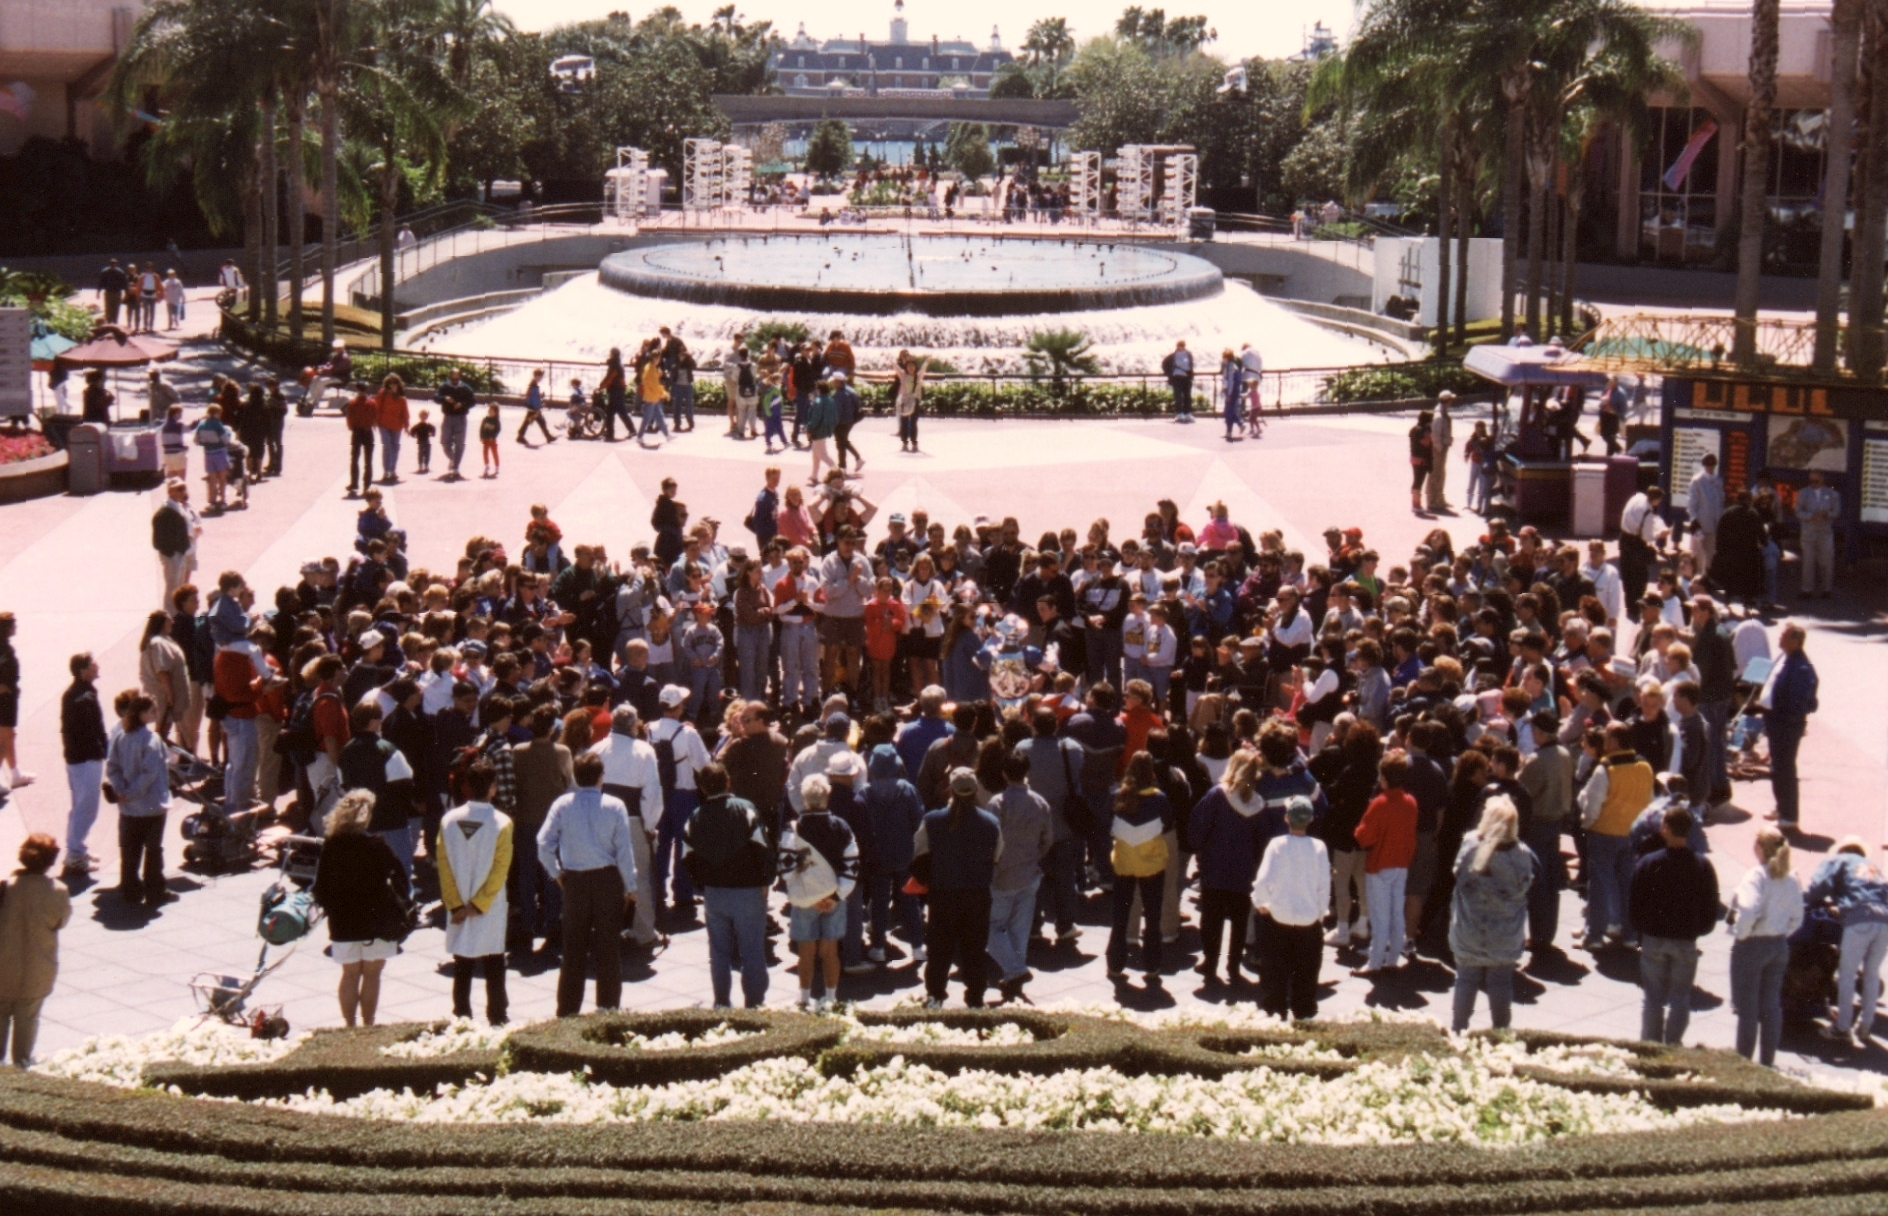 epcot crowd2